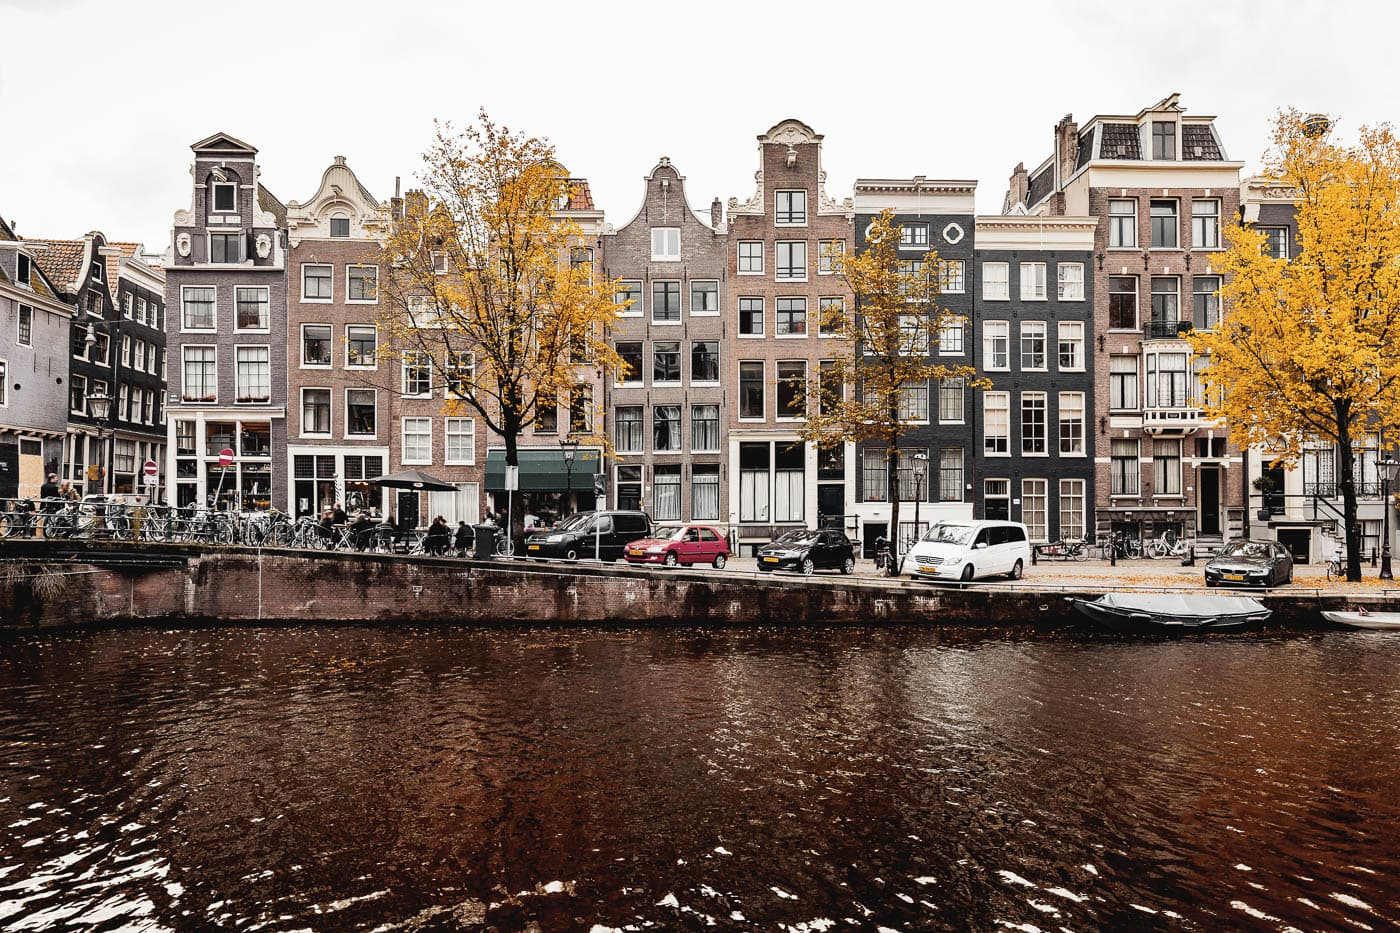 Singel Gracht in Amsterdam, Niederlande, Herbst in Holland